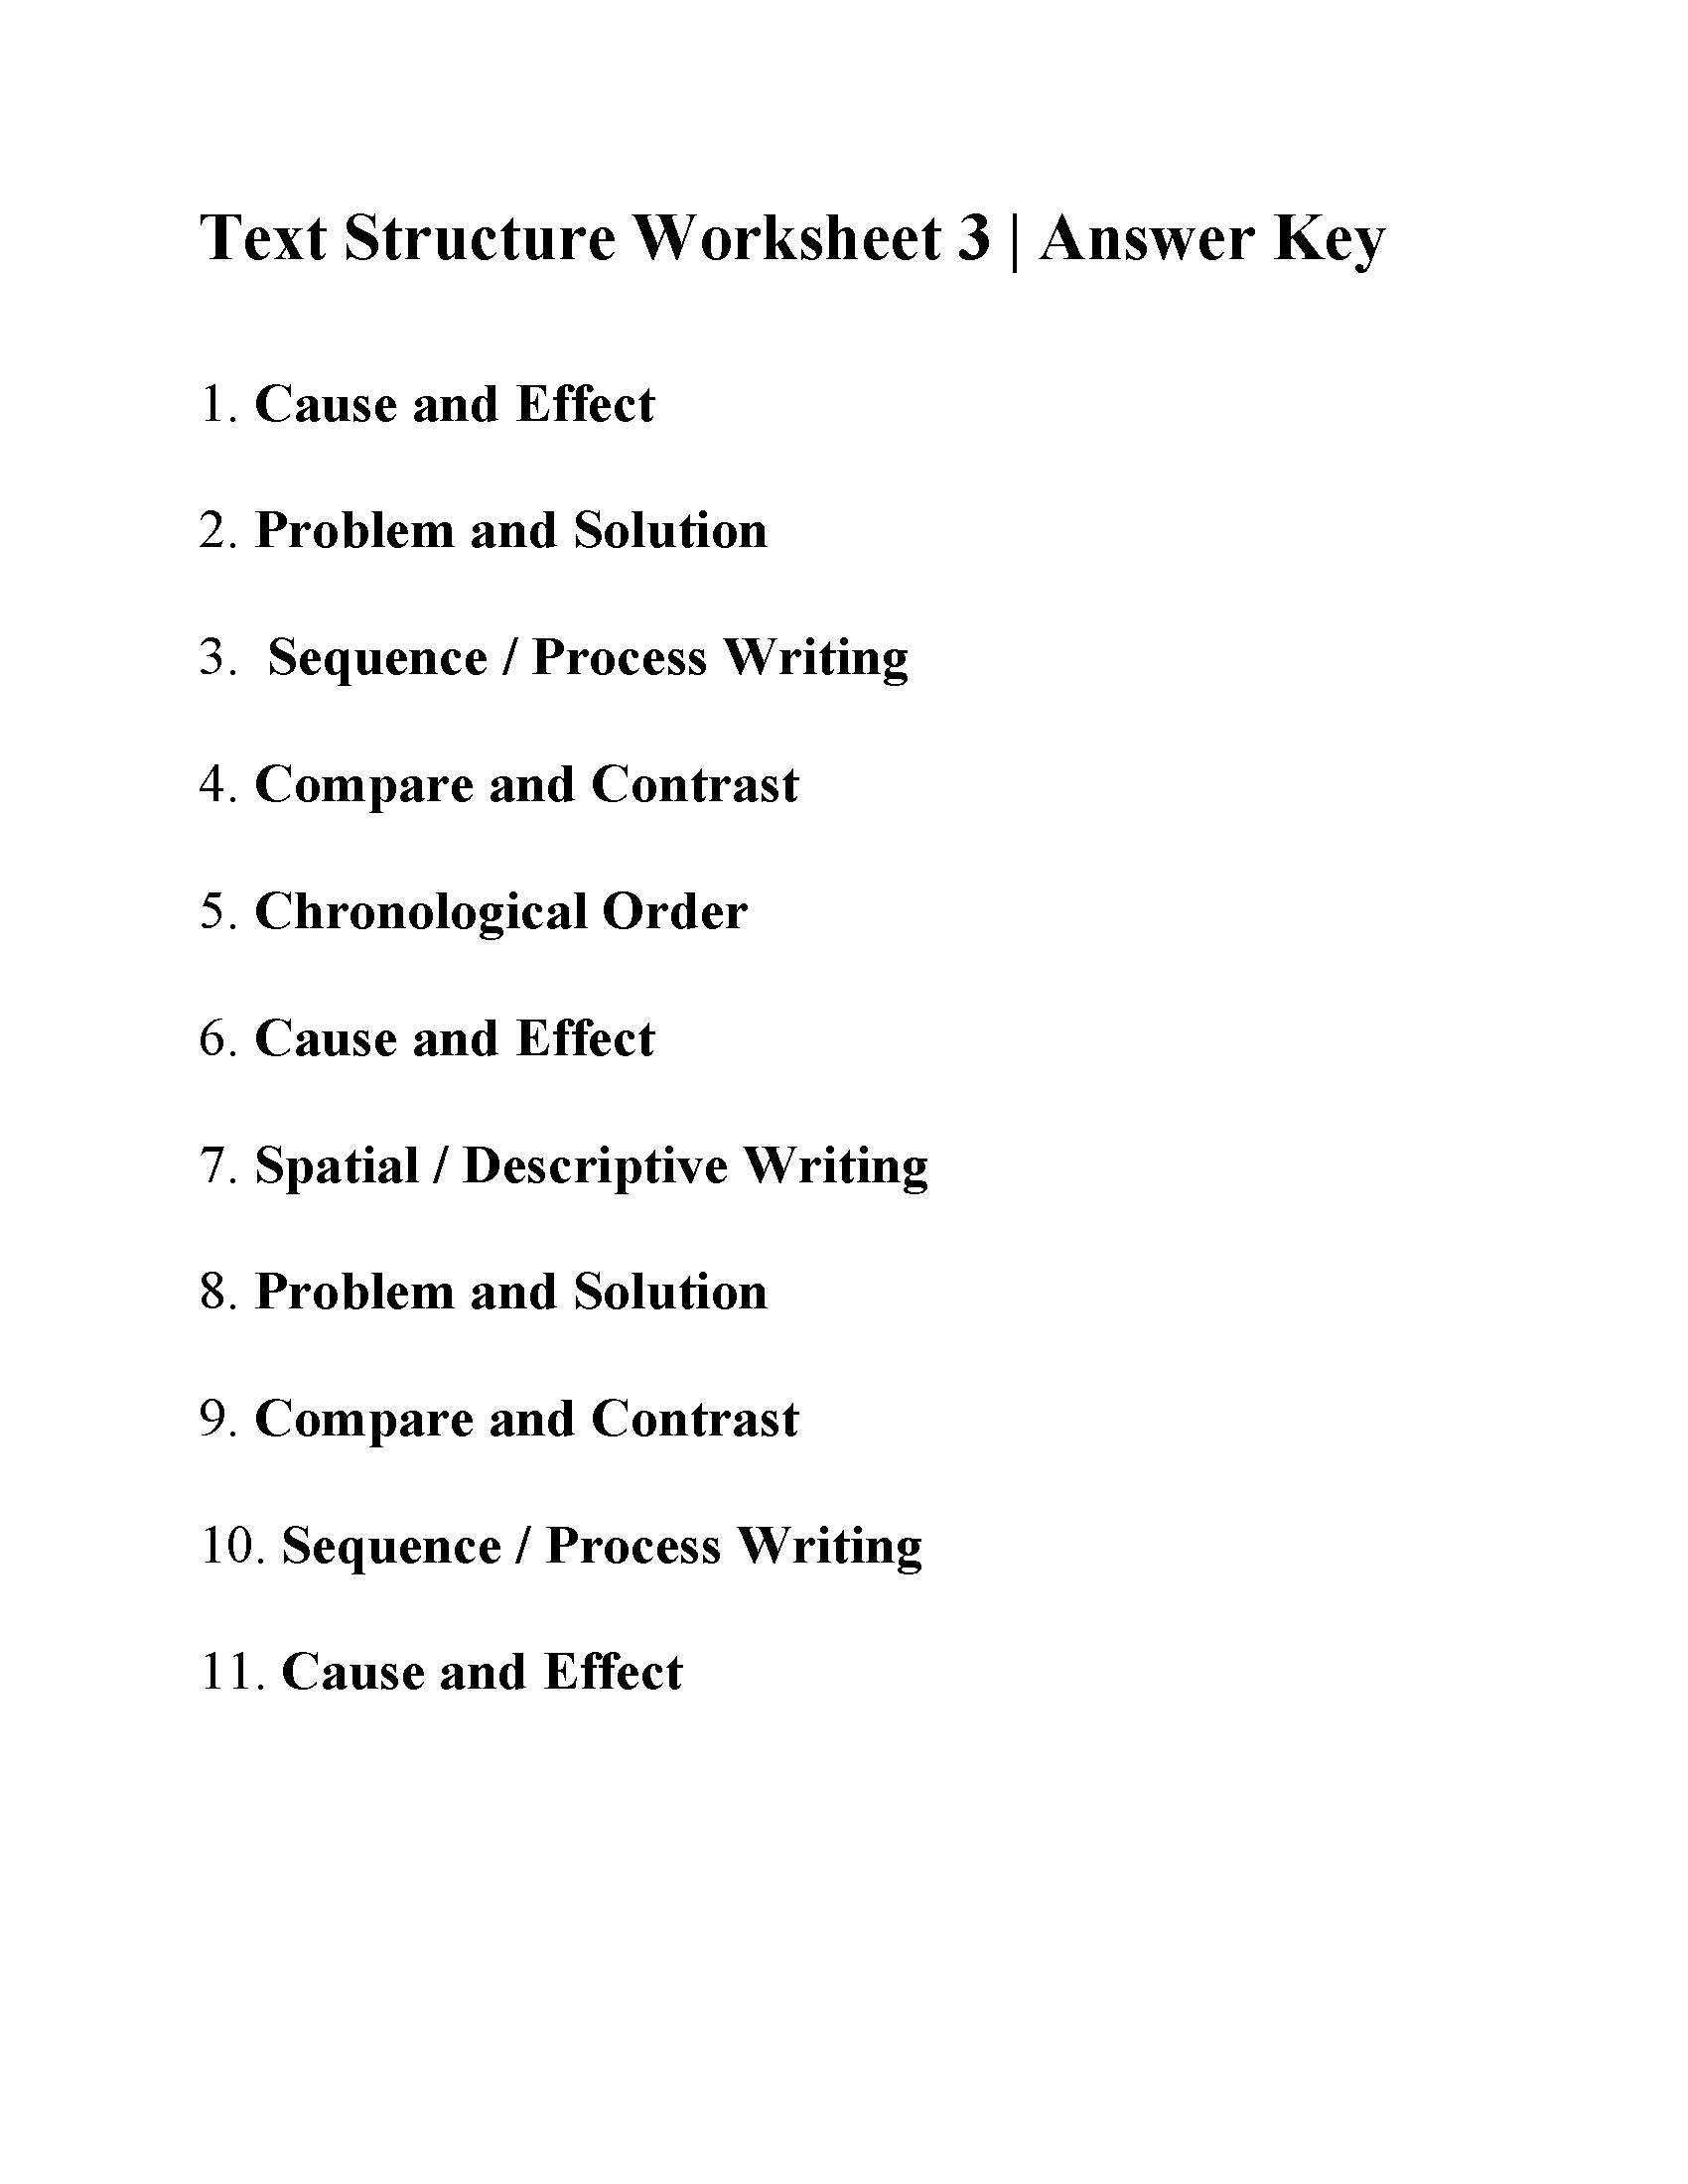 This Is The Answer Key For The Text Structure Worksheet 3 Text Structure Text Structure Worksheets Text Structure Examples